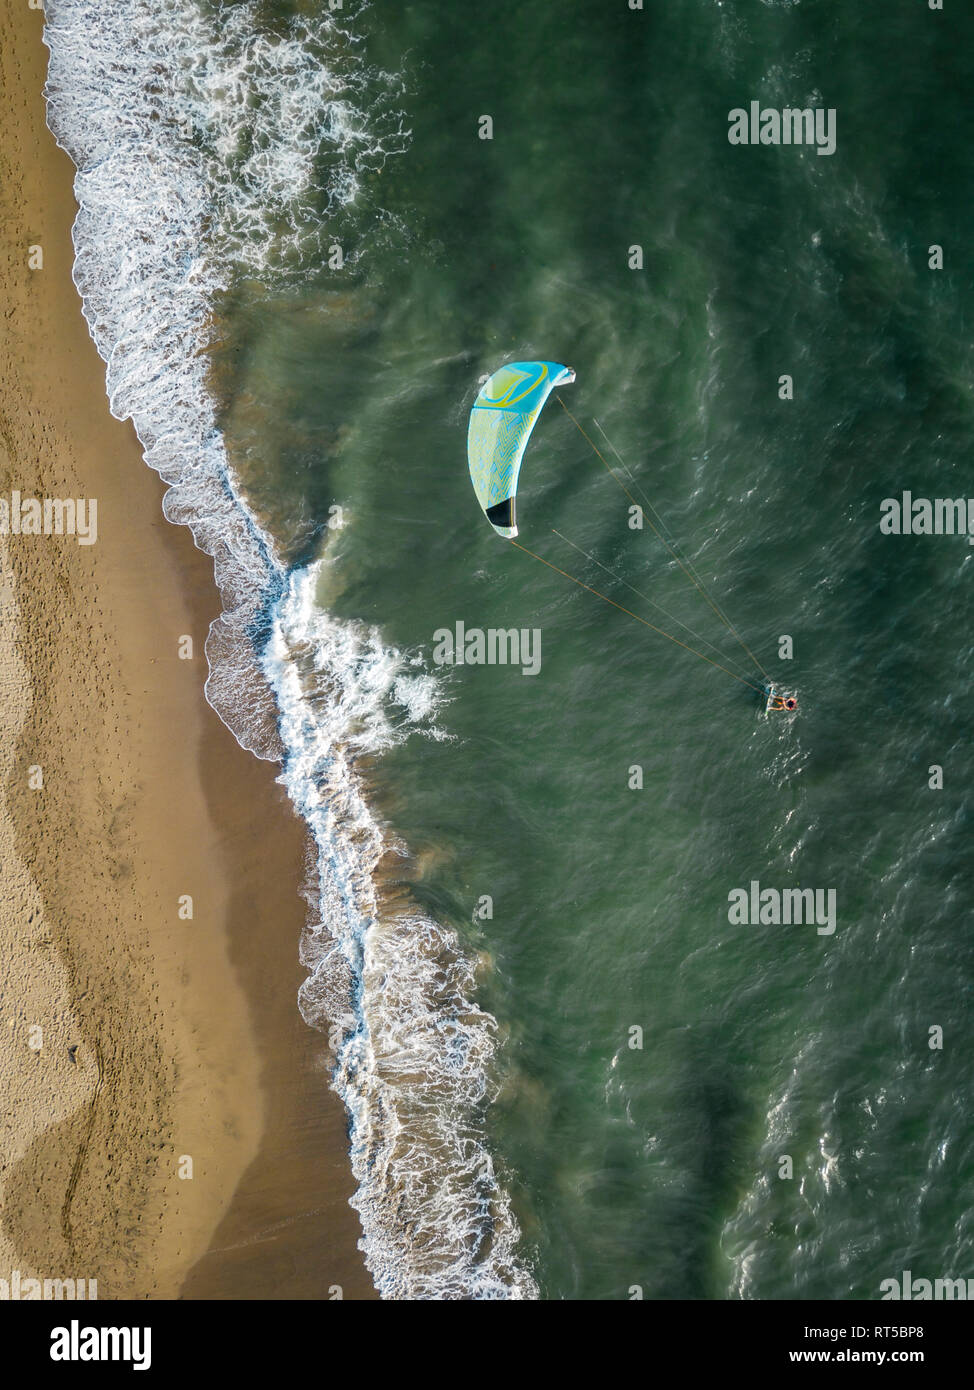 Indonesia, Bali, Berawa beach, Aerial view of kite surfer - Stock Image